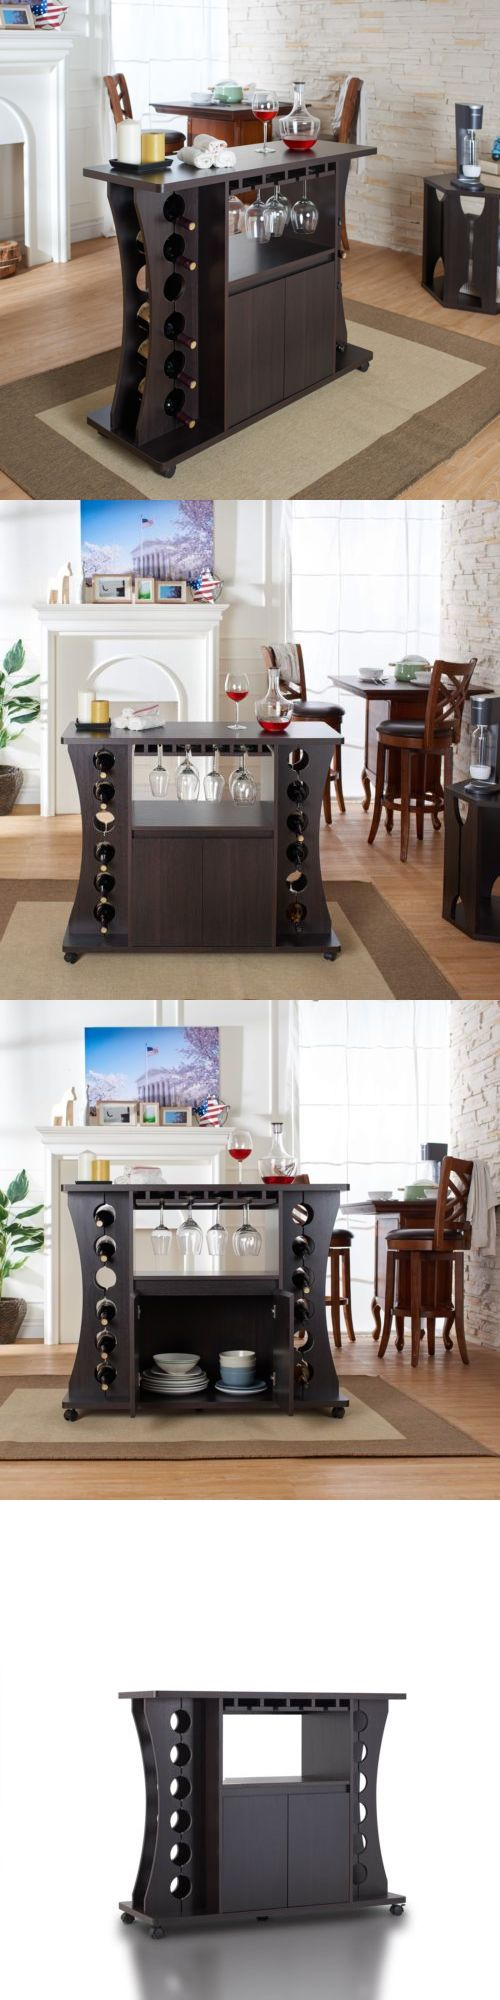 Sideboards And Buffets 183322 Home Bar Furniture Set Buffet Table With Wine Rack Servers Cabinet